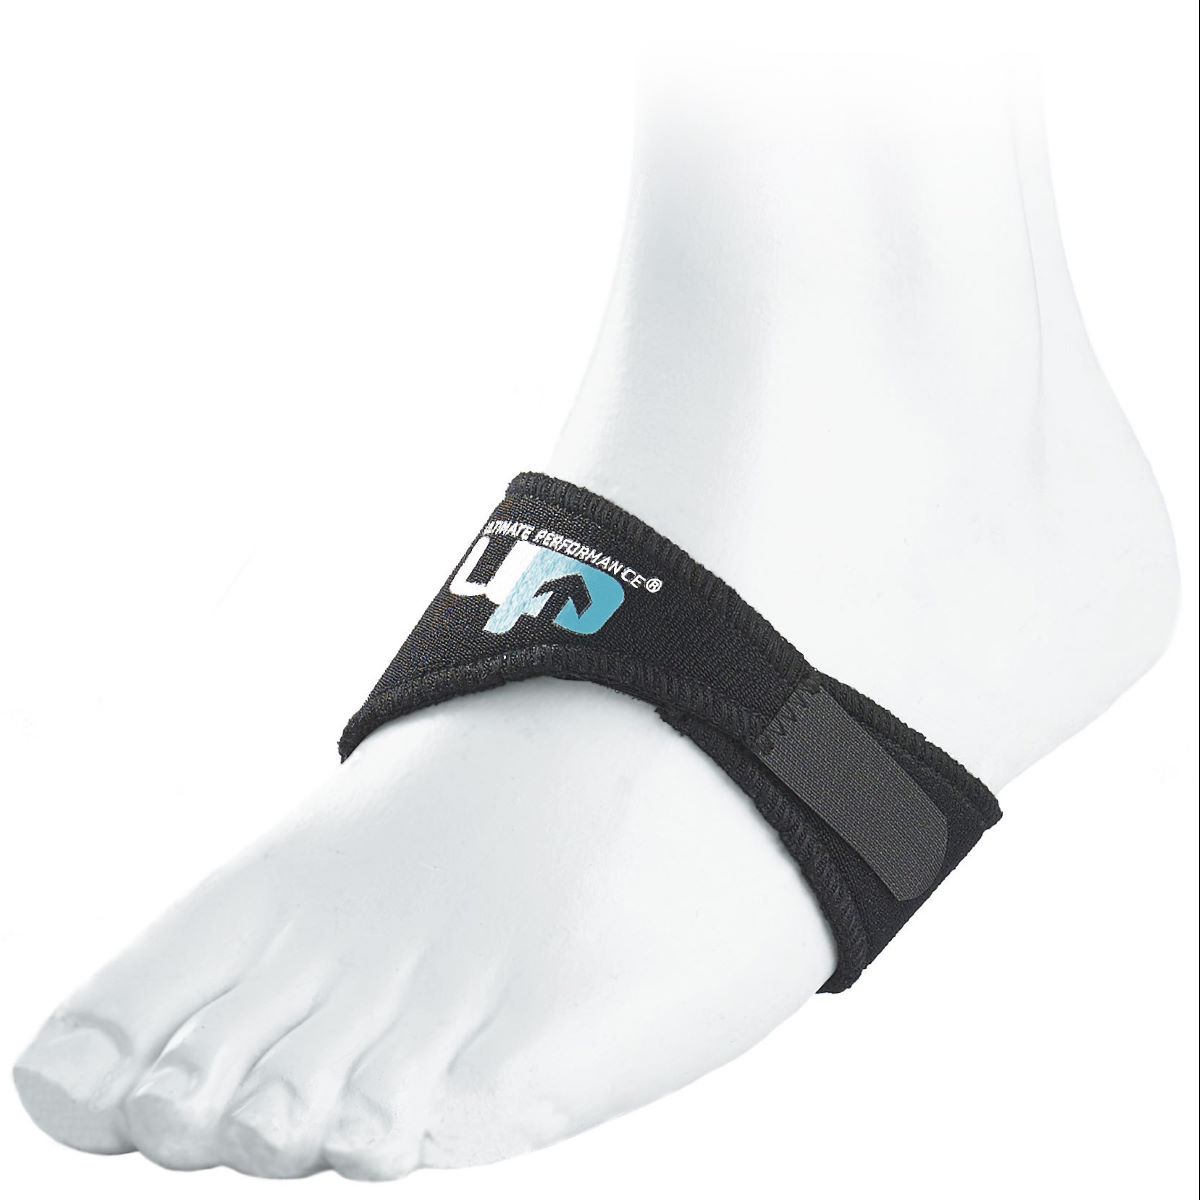 Ultimate Performance Ultimate Arch Support   Foot Supports